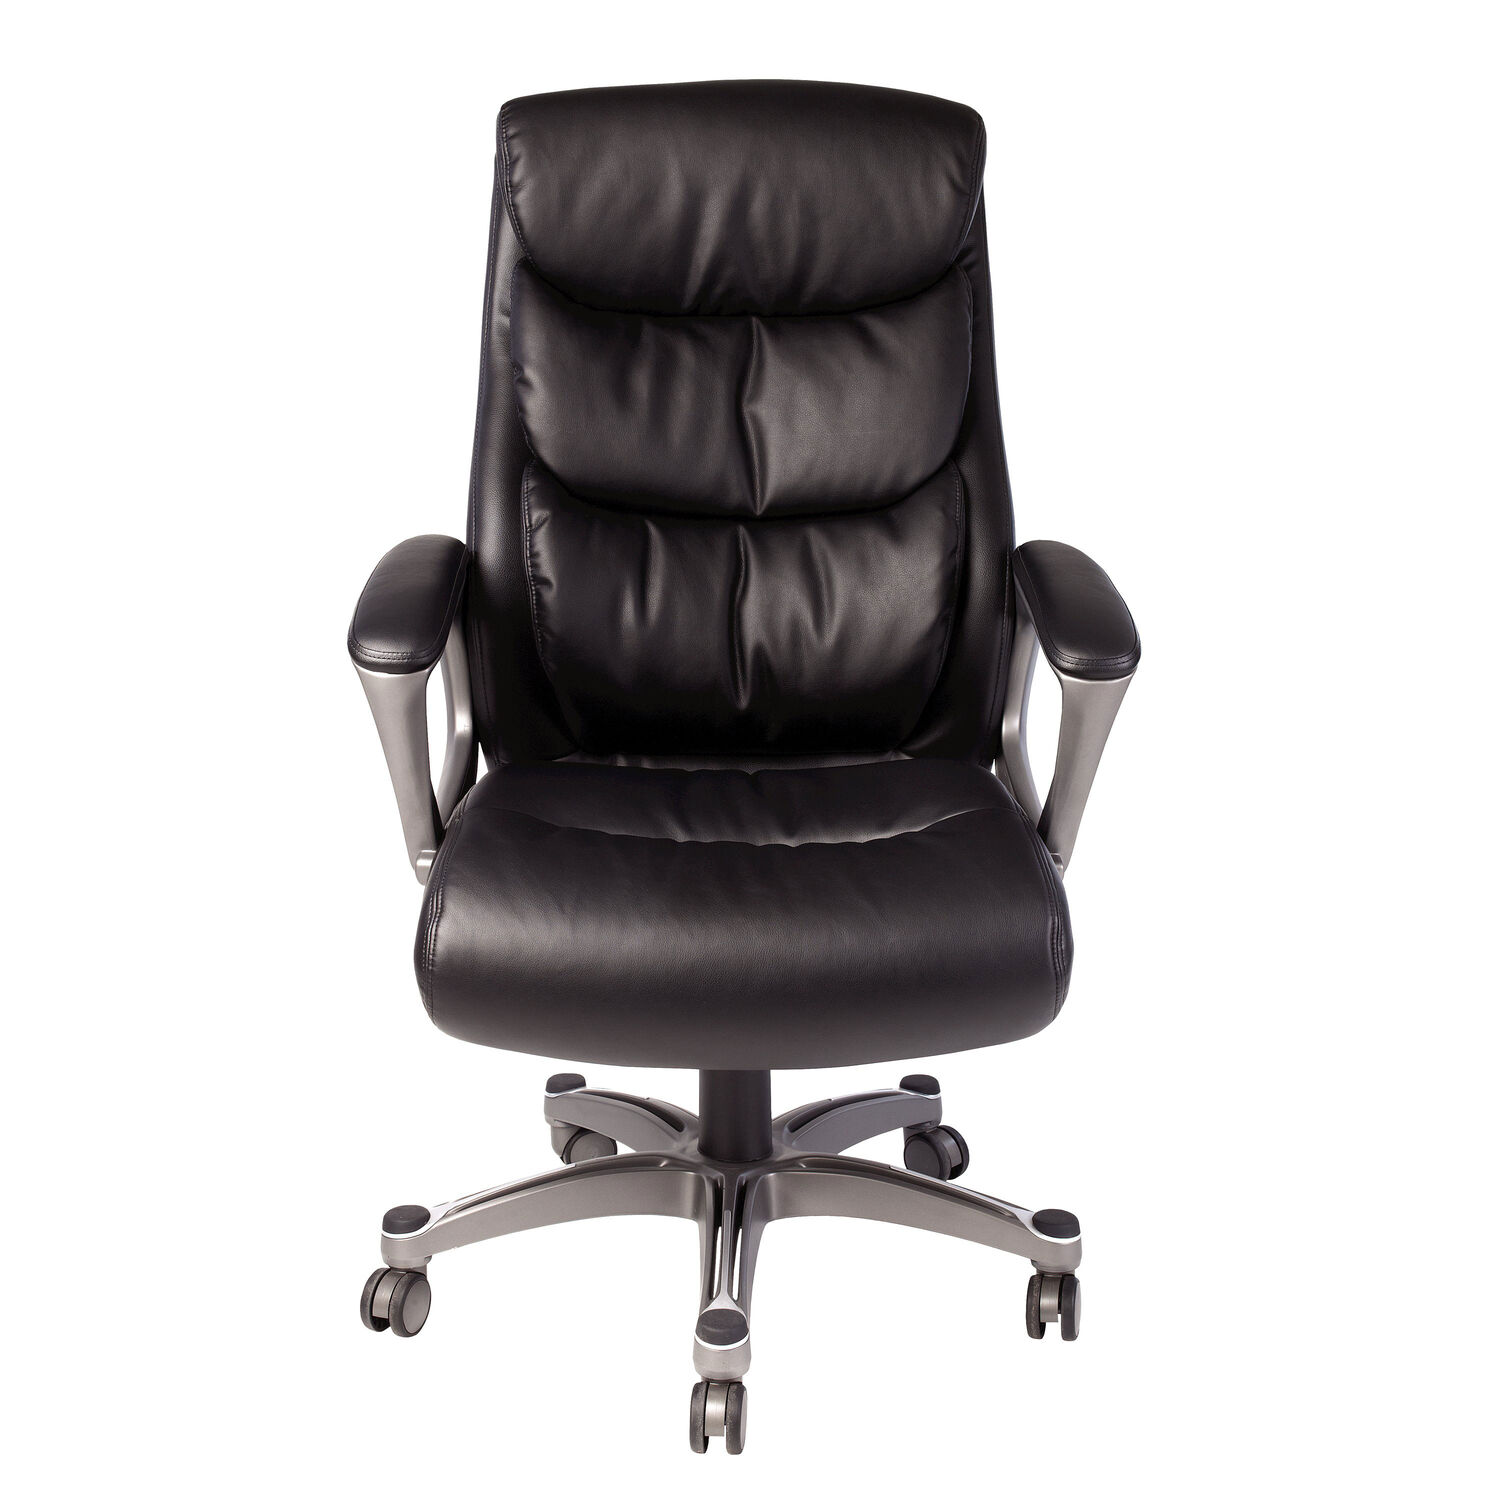 Samsonite Lisbon Bonded Leather Chair in the color Black